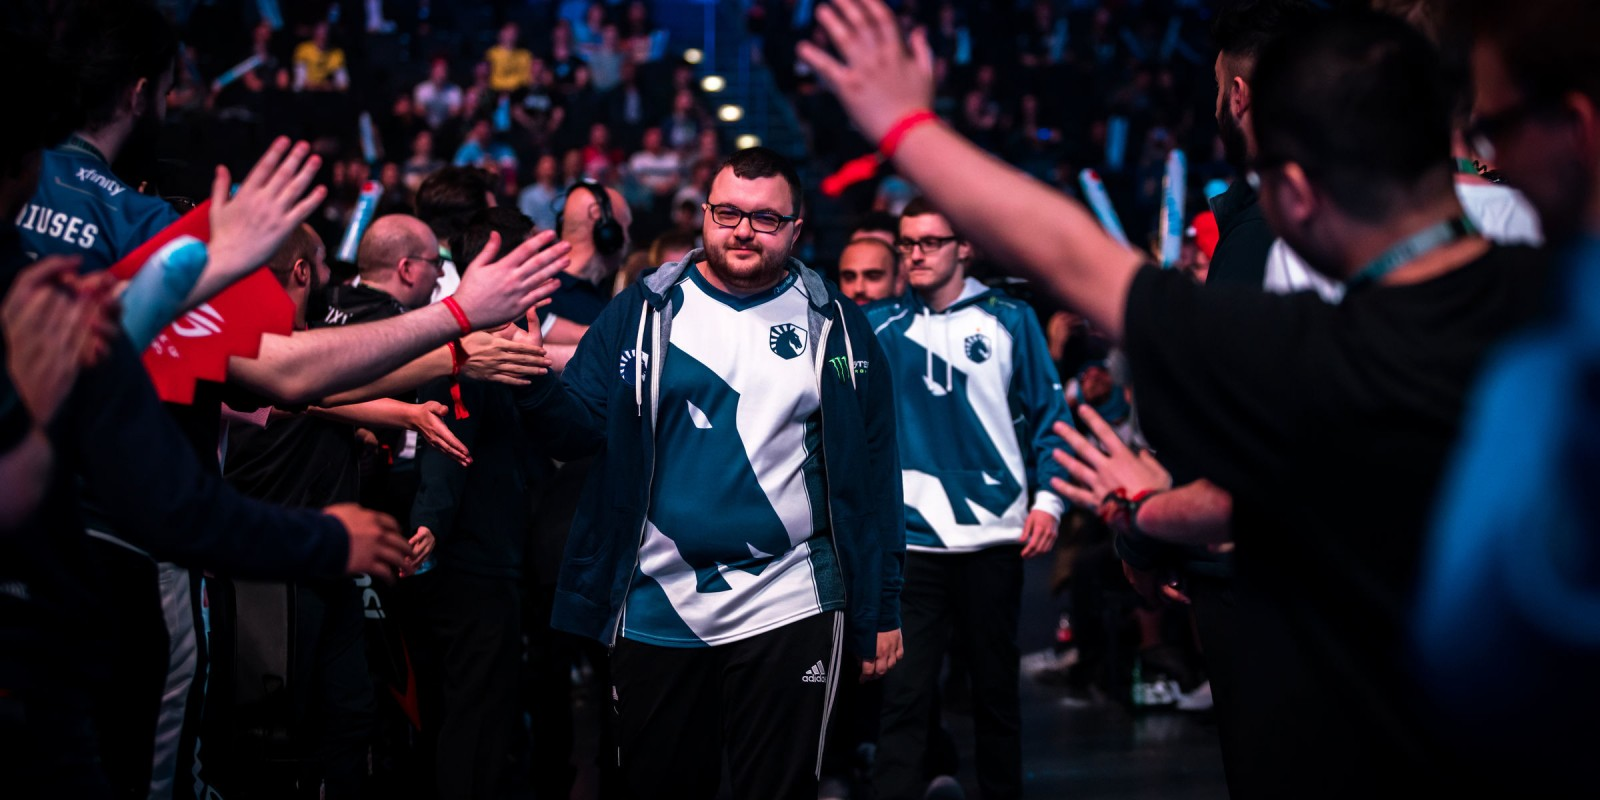 Photos of Team Liquid playing in ESL ONE Birmingham. They placed 7th/8th this event.